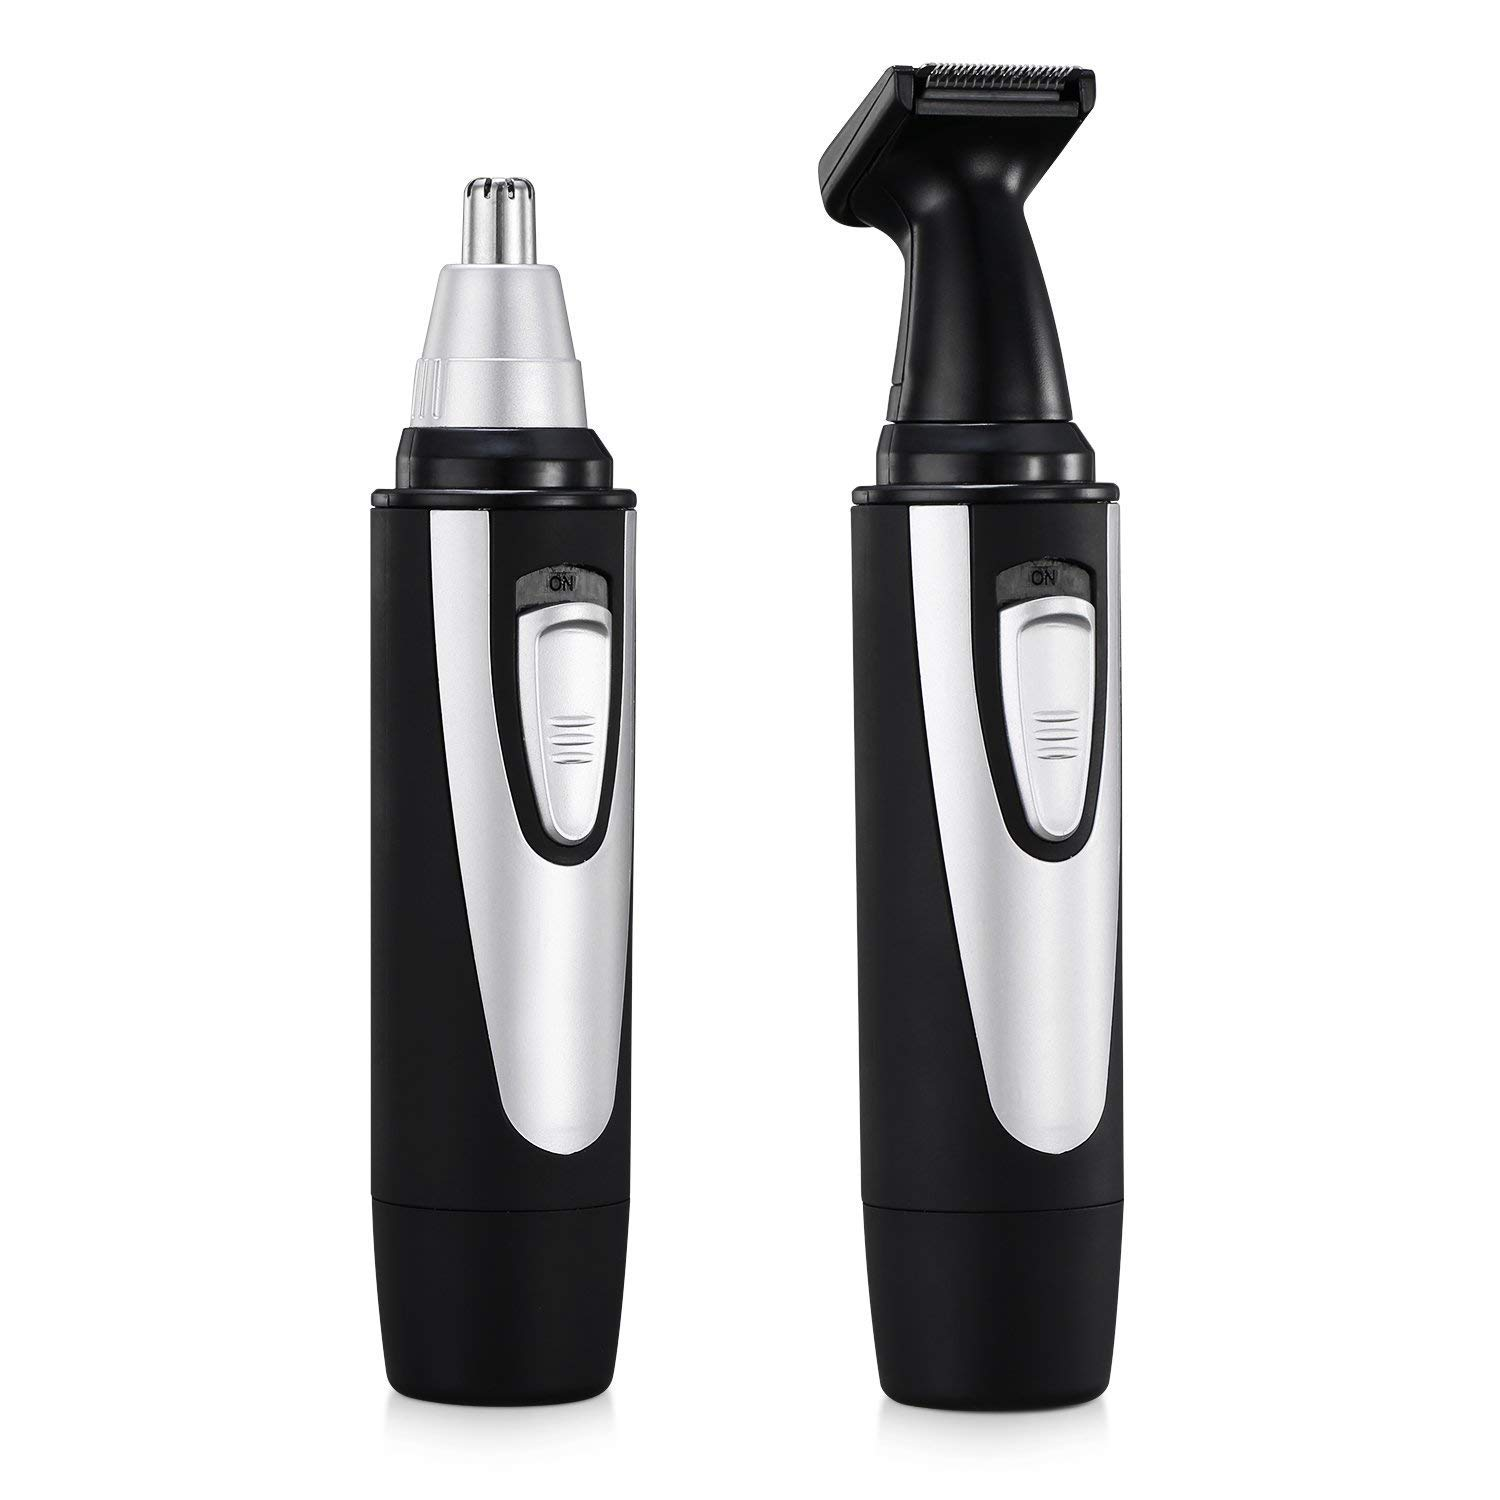 Women cycling hair clippers for women facial hair sexy nude